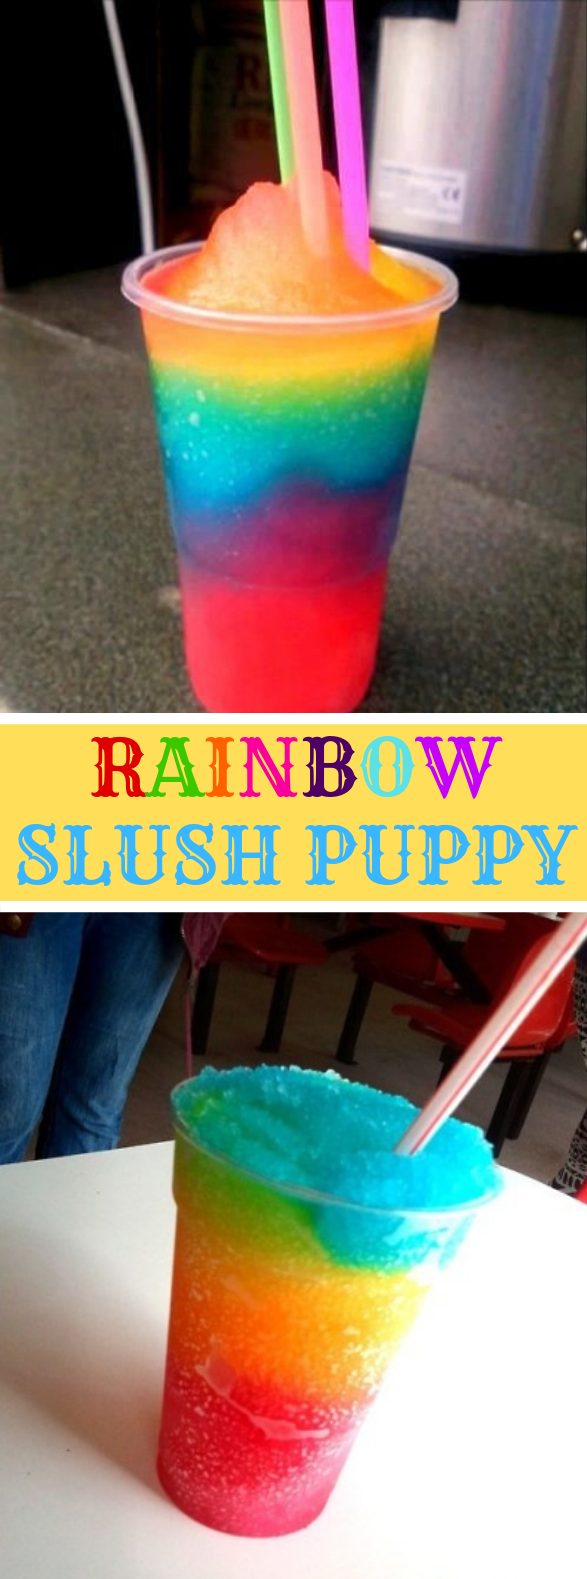 Rainbow Slush Puppy #drink #cool